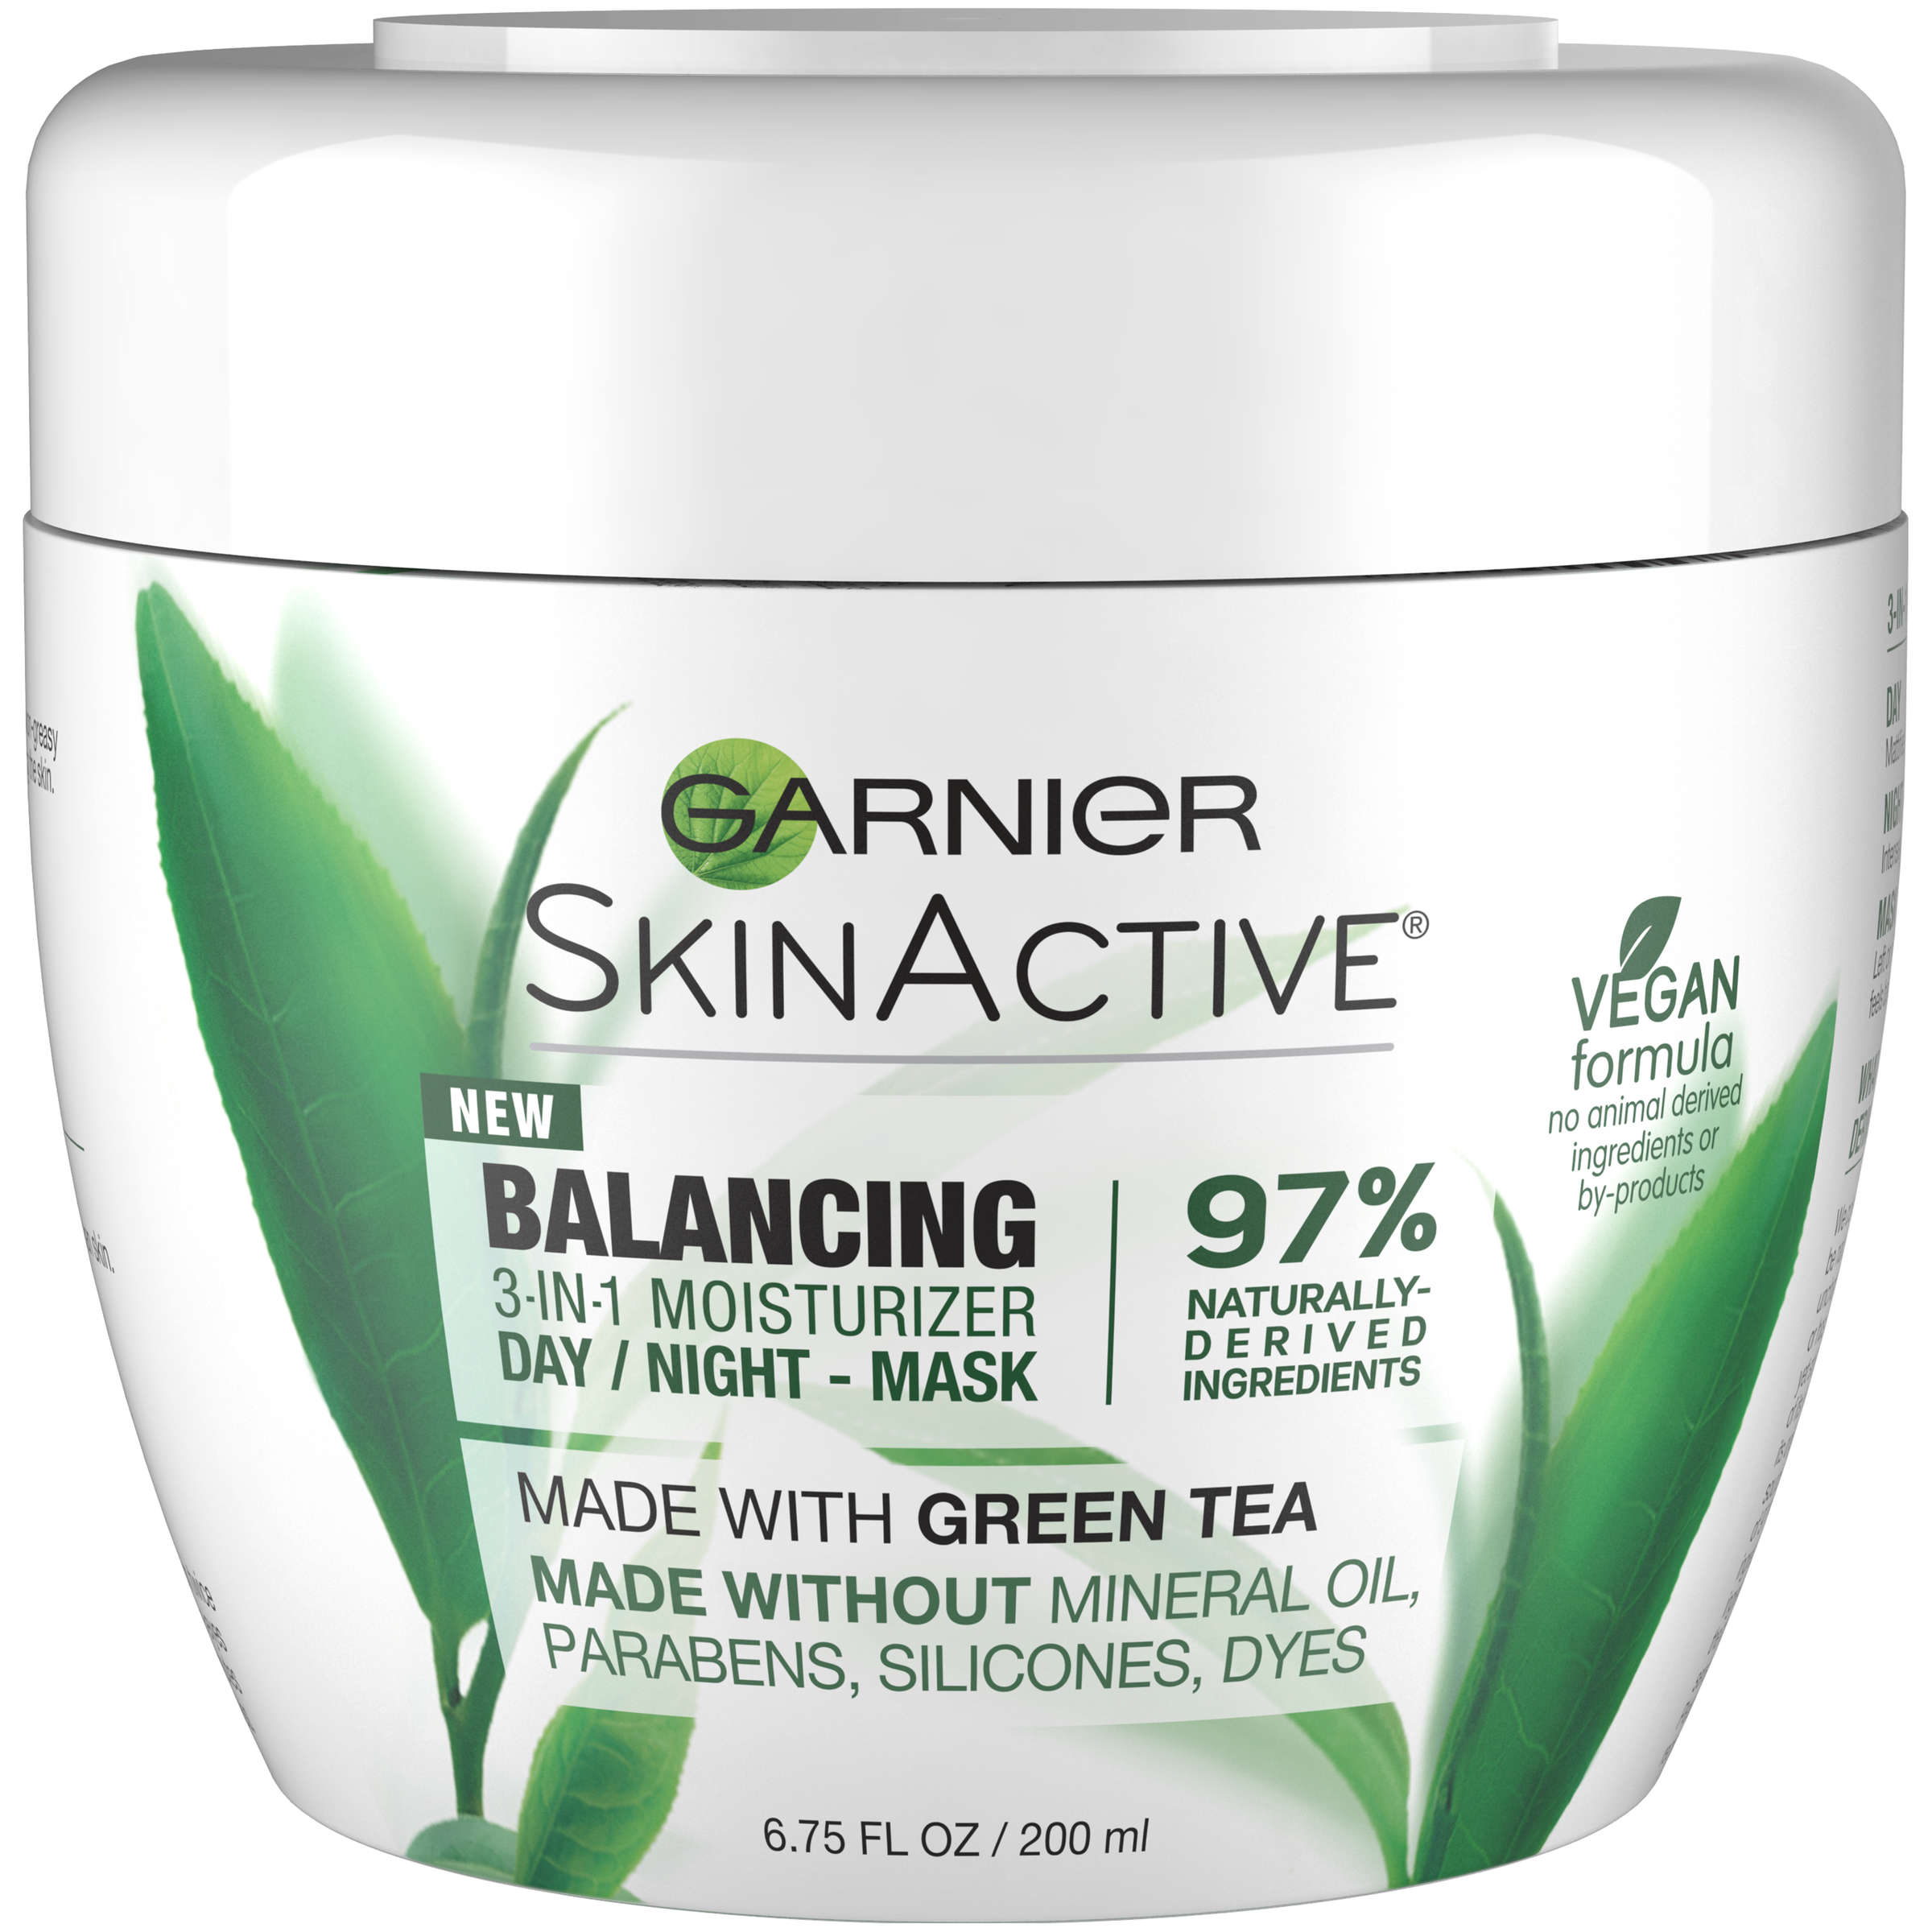 Garnier SkinActive Balancing 3-in-1 Moisturizer Day/Night Mask, 6.75 fl oz